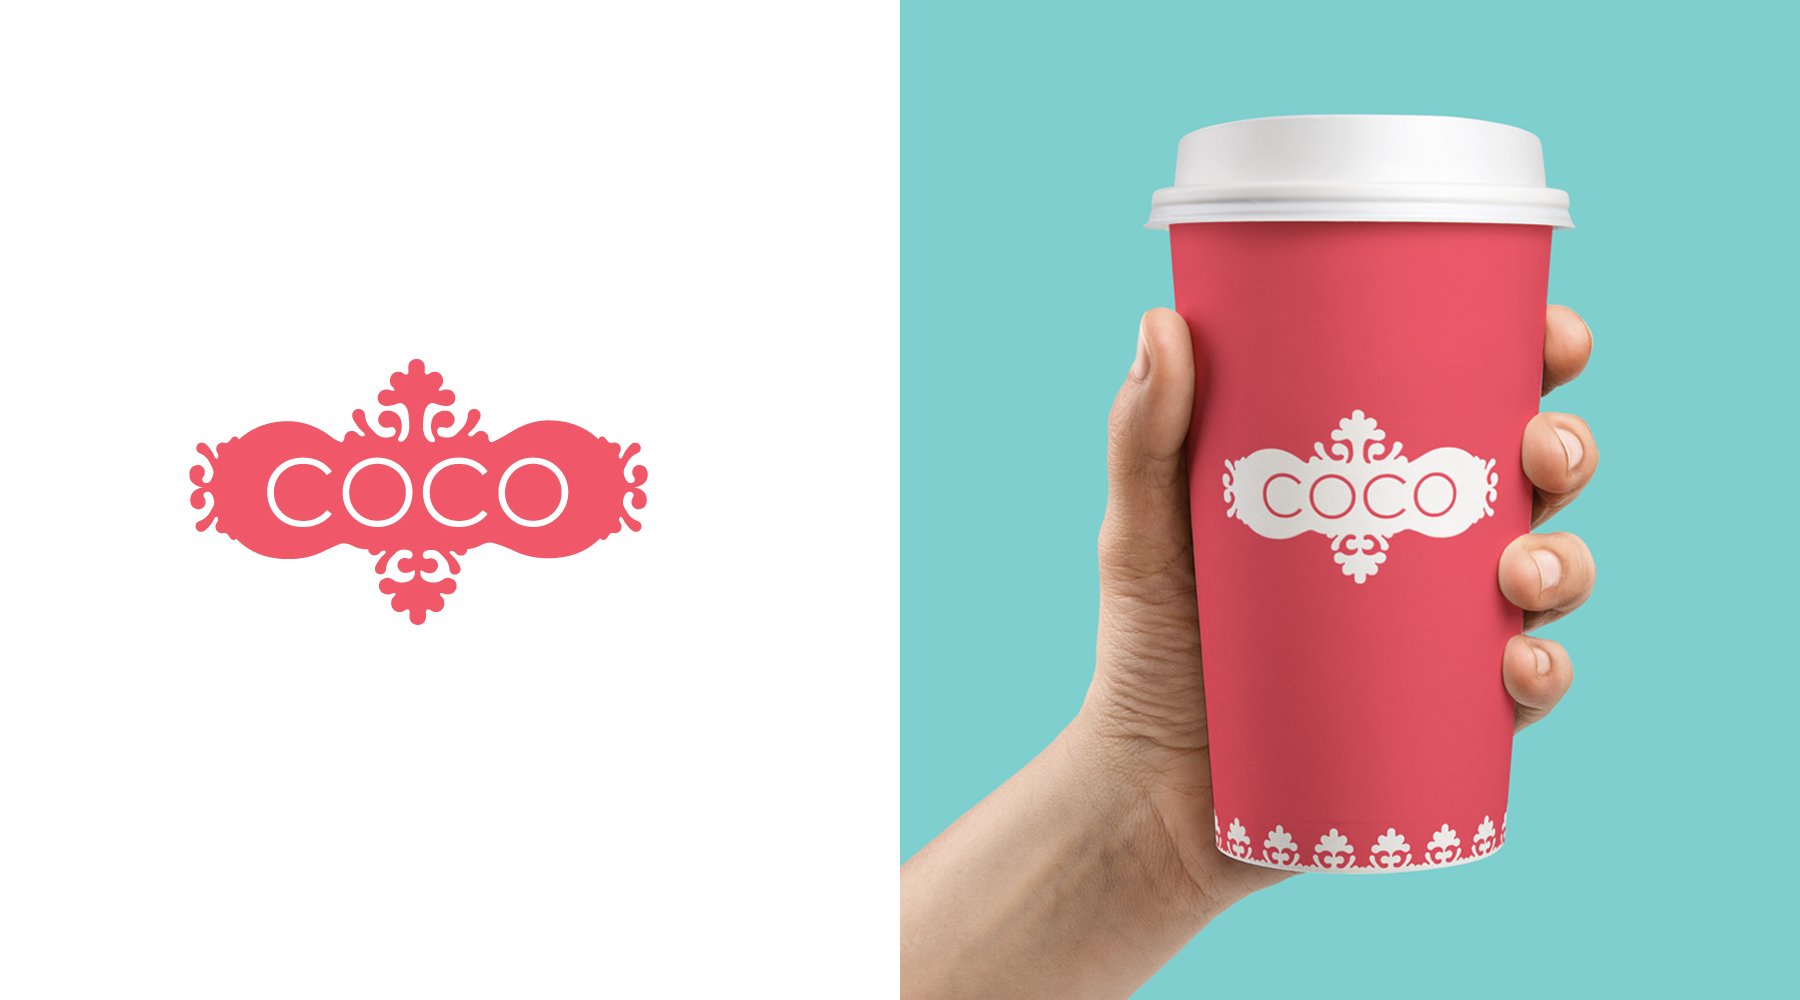 COCO   Food and Beverage industry